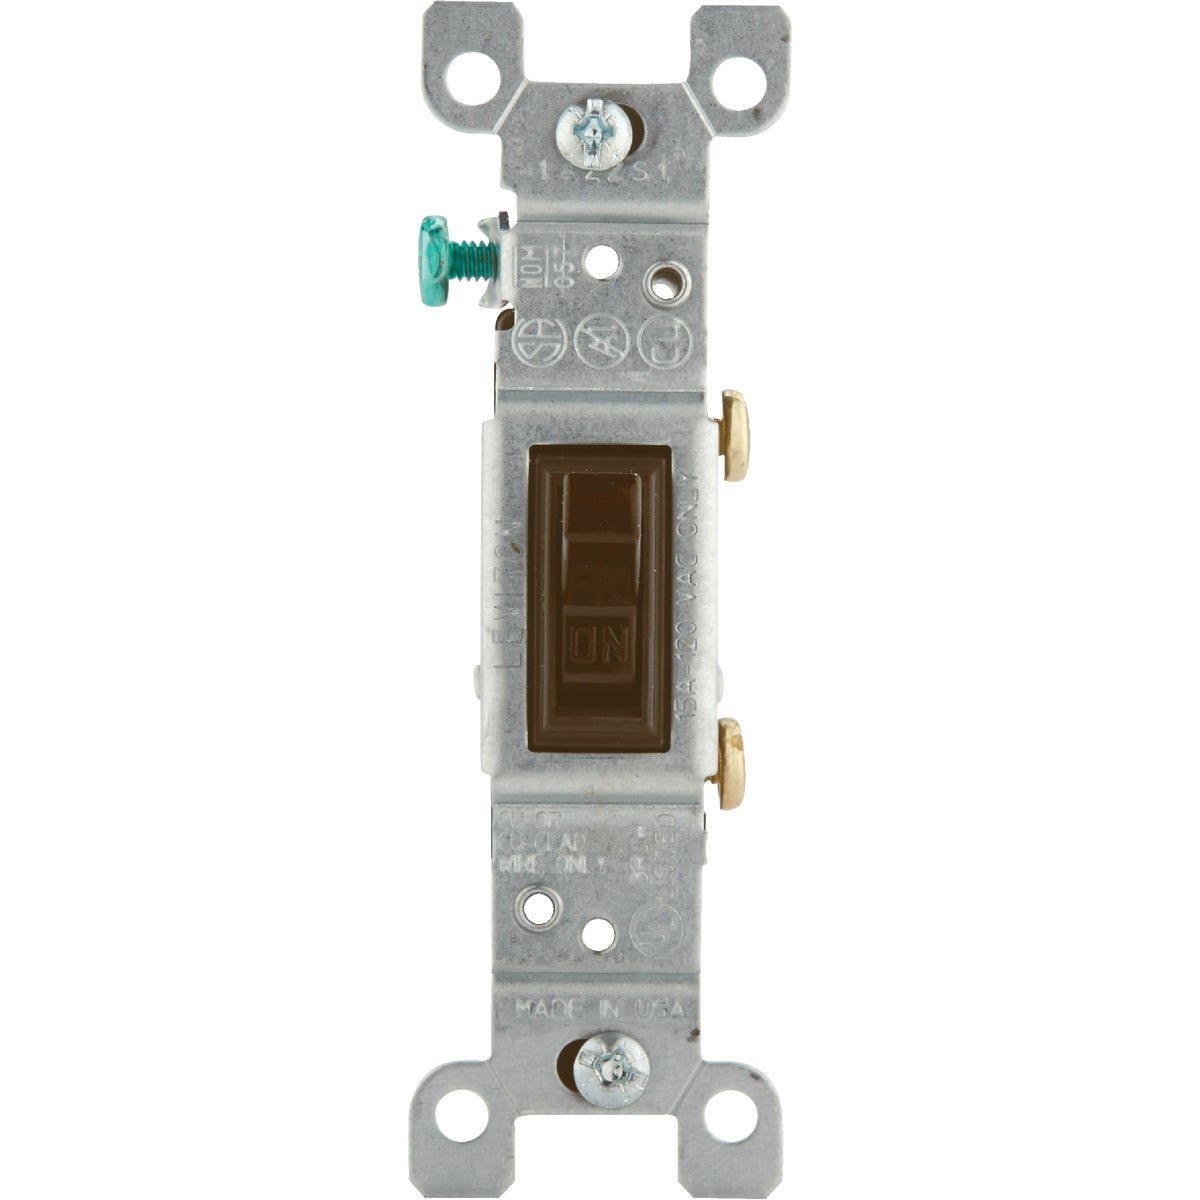 BRN 1POLE GRND SWITCH - 202-1451-2CP by Leviton Mfg Co